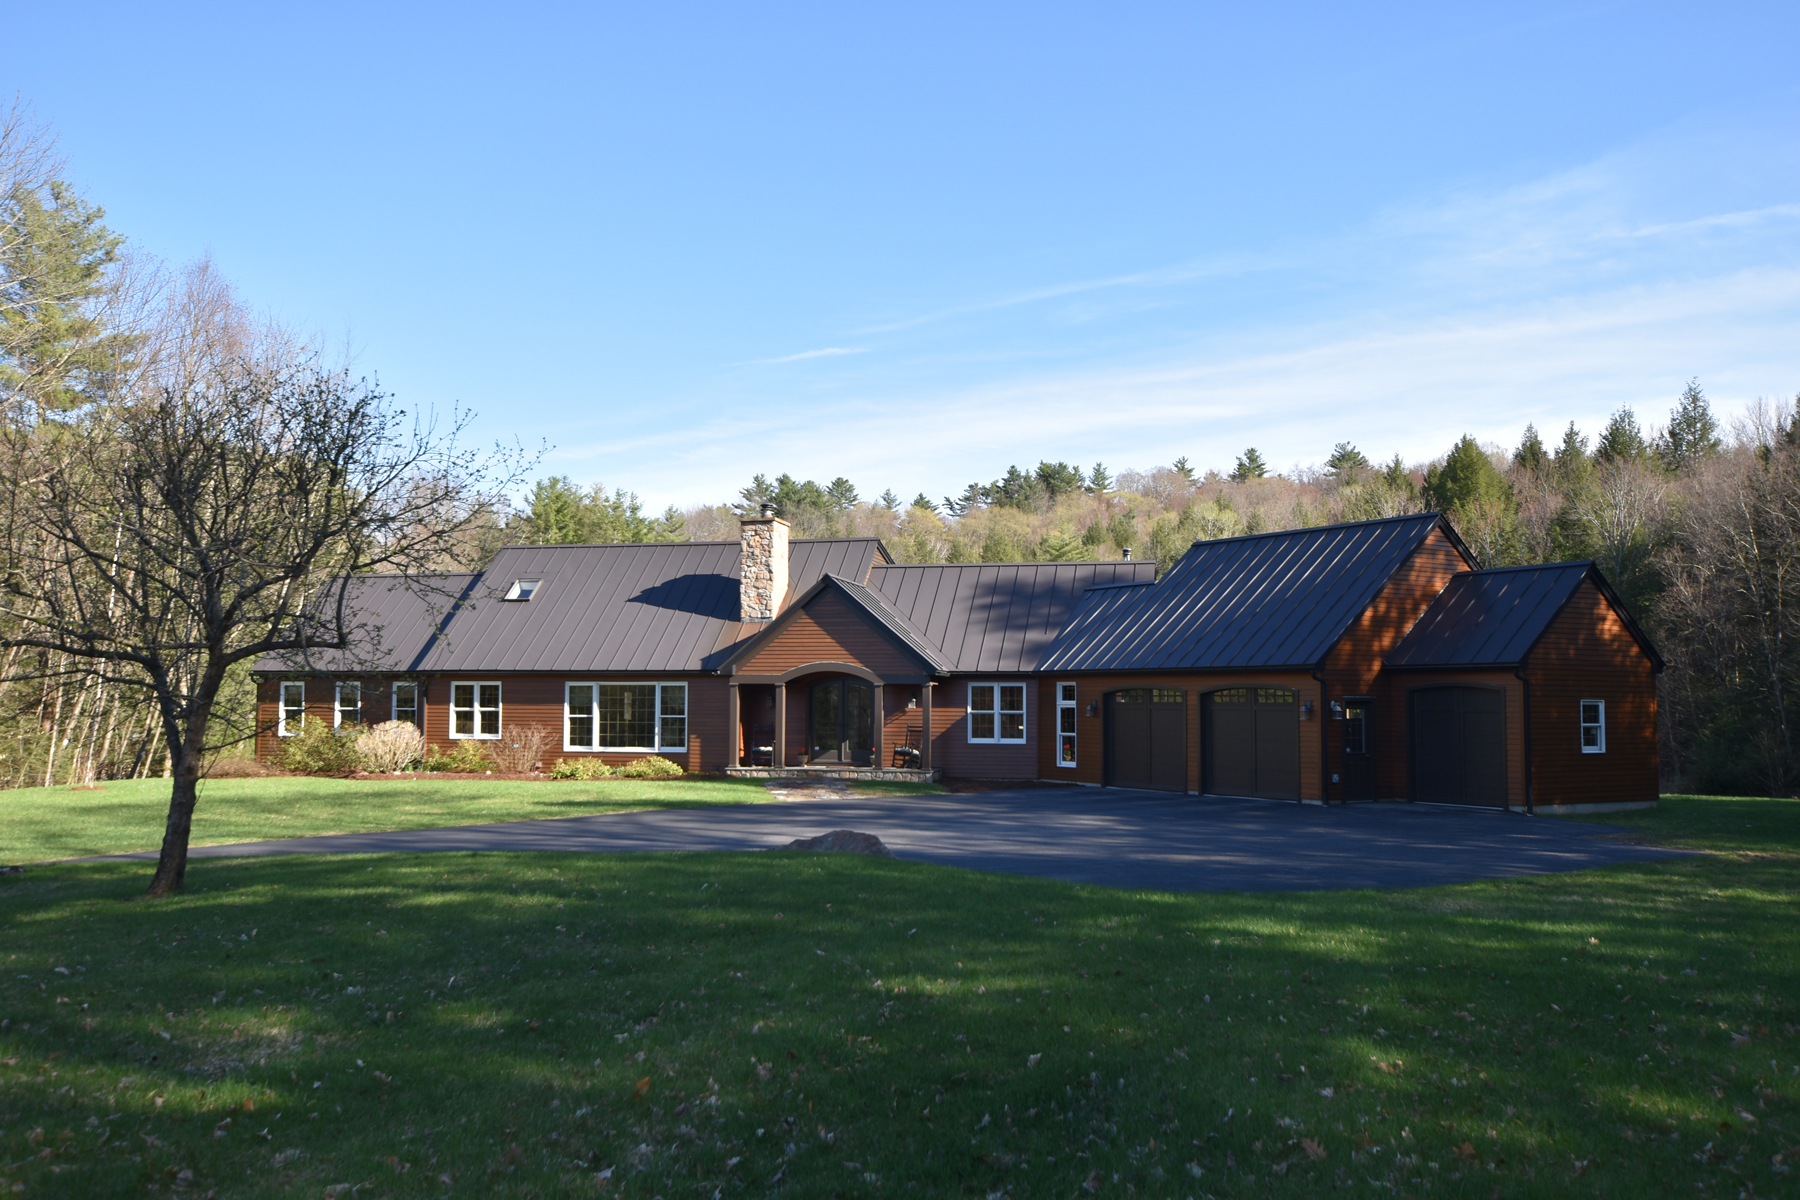 Single Family Homes for Sale at Rutland Town - Curb Appeal & Private Setting 94 Campbell Rd Rutland Town, Vermont 05701 United States